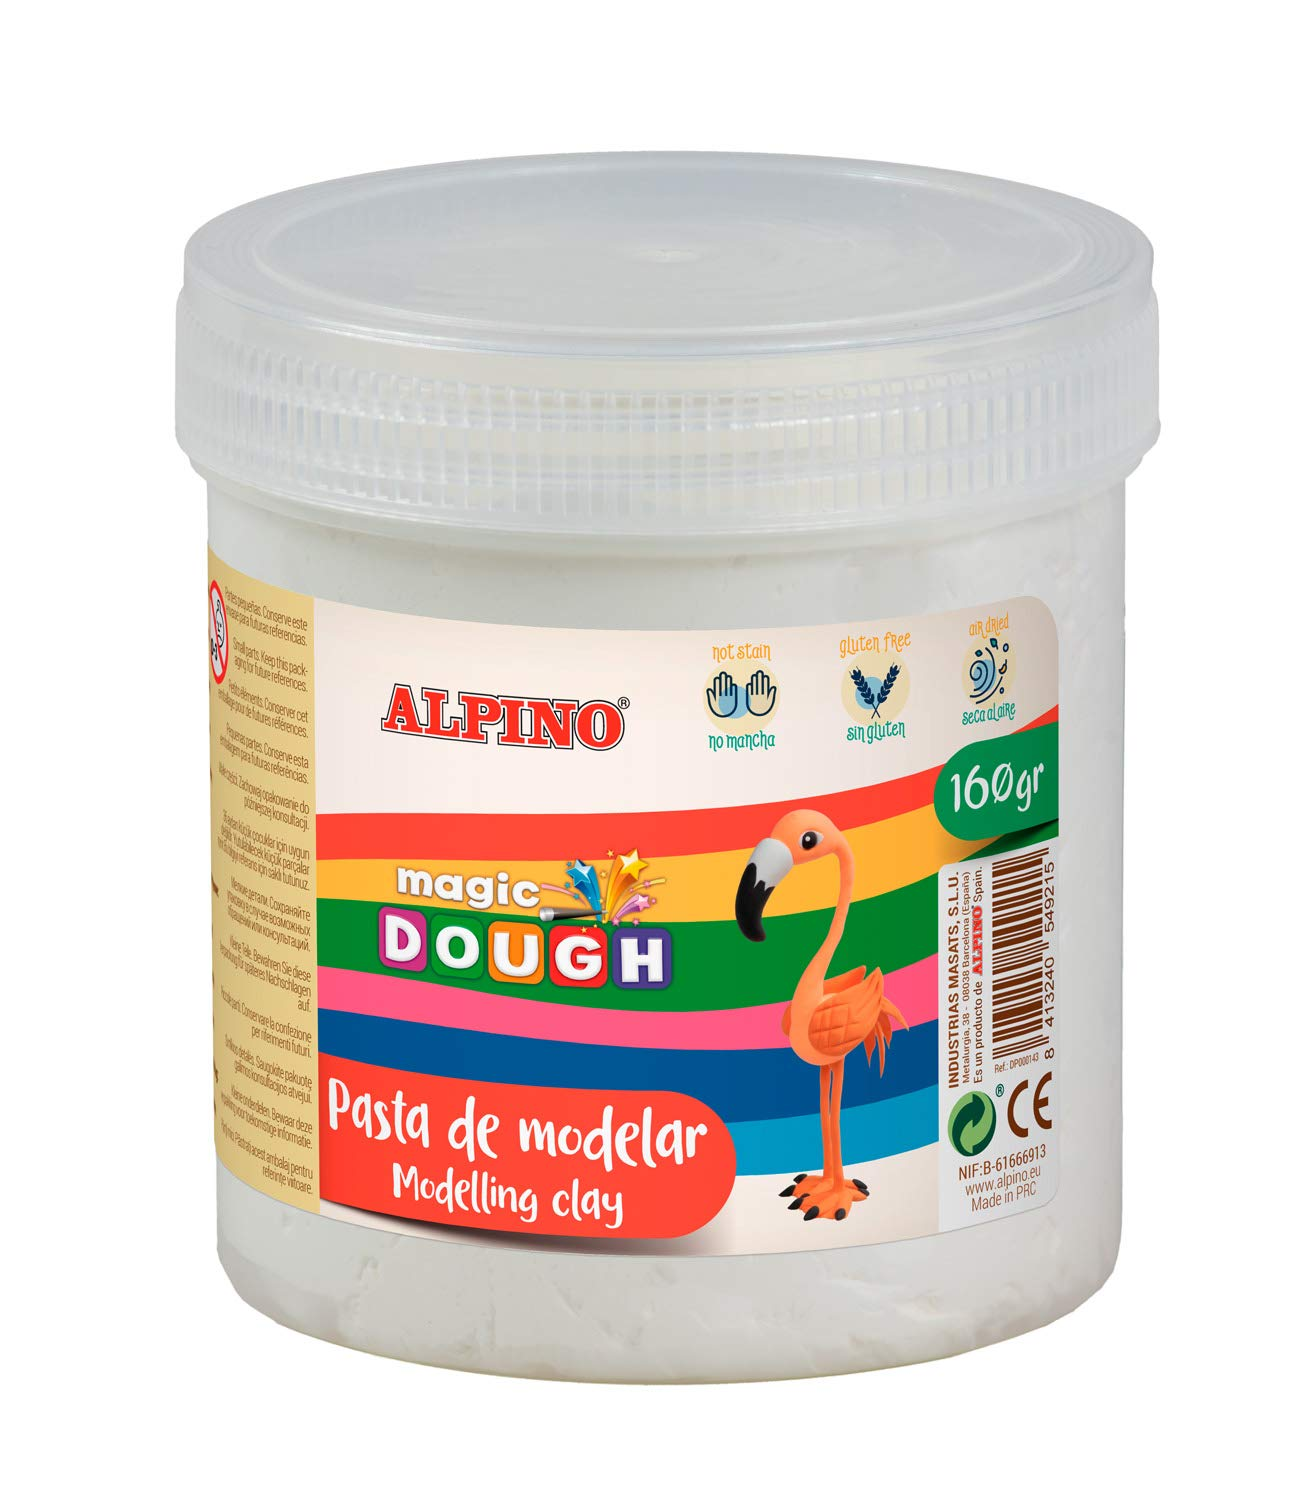 Pasta modelar ALPINO Magic Dough 160g blanco DP000143